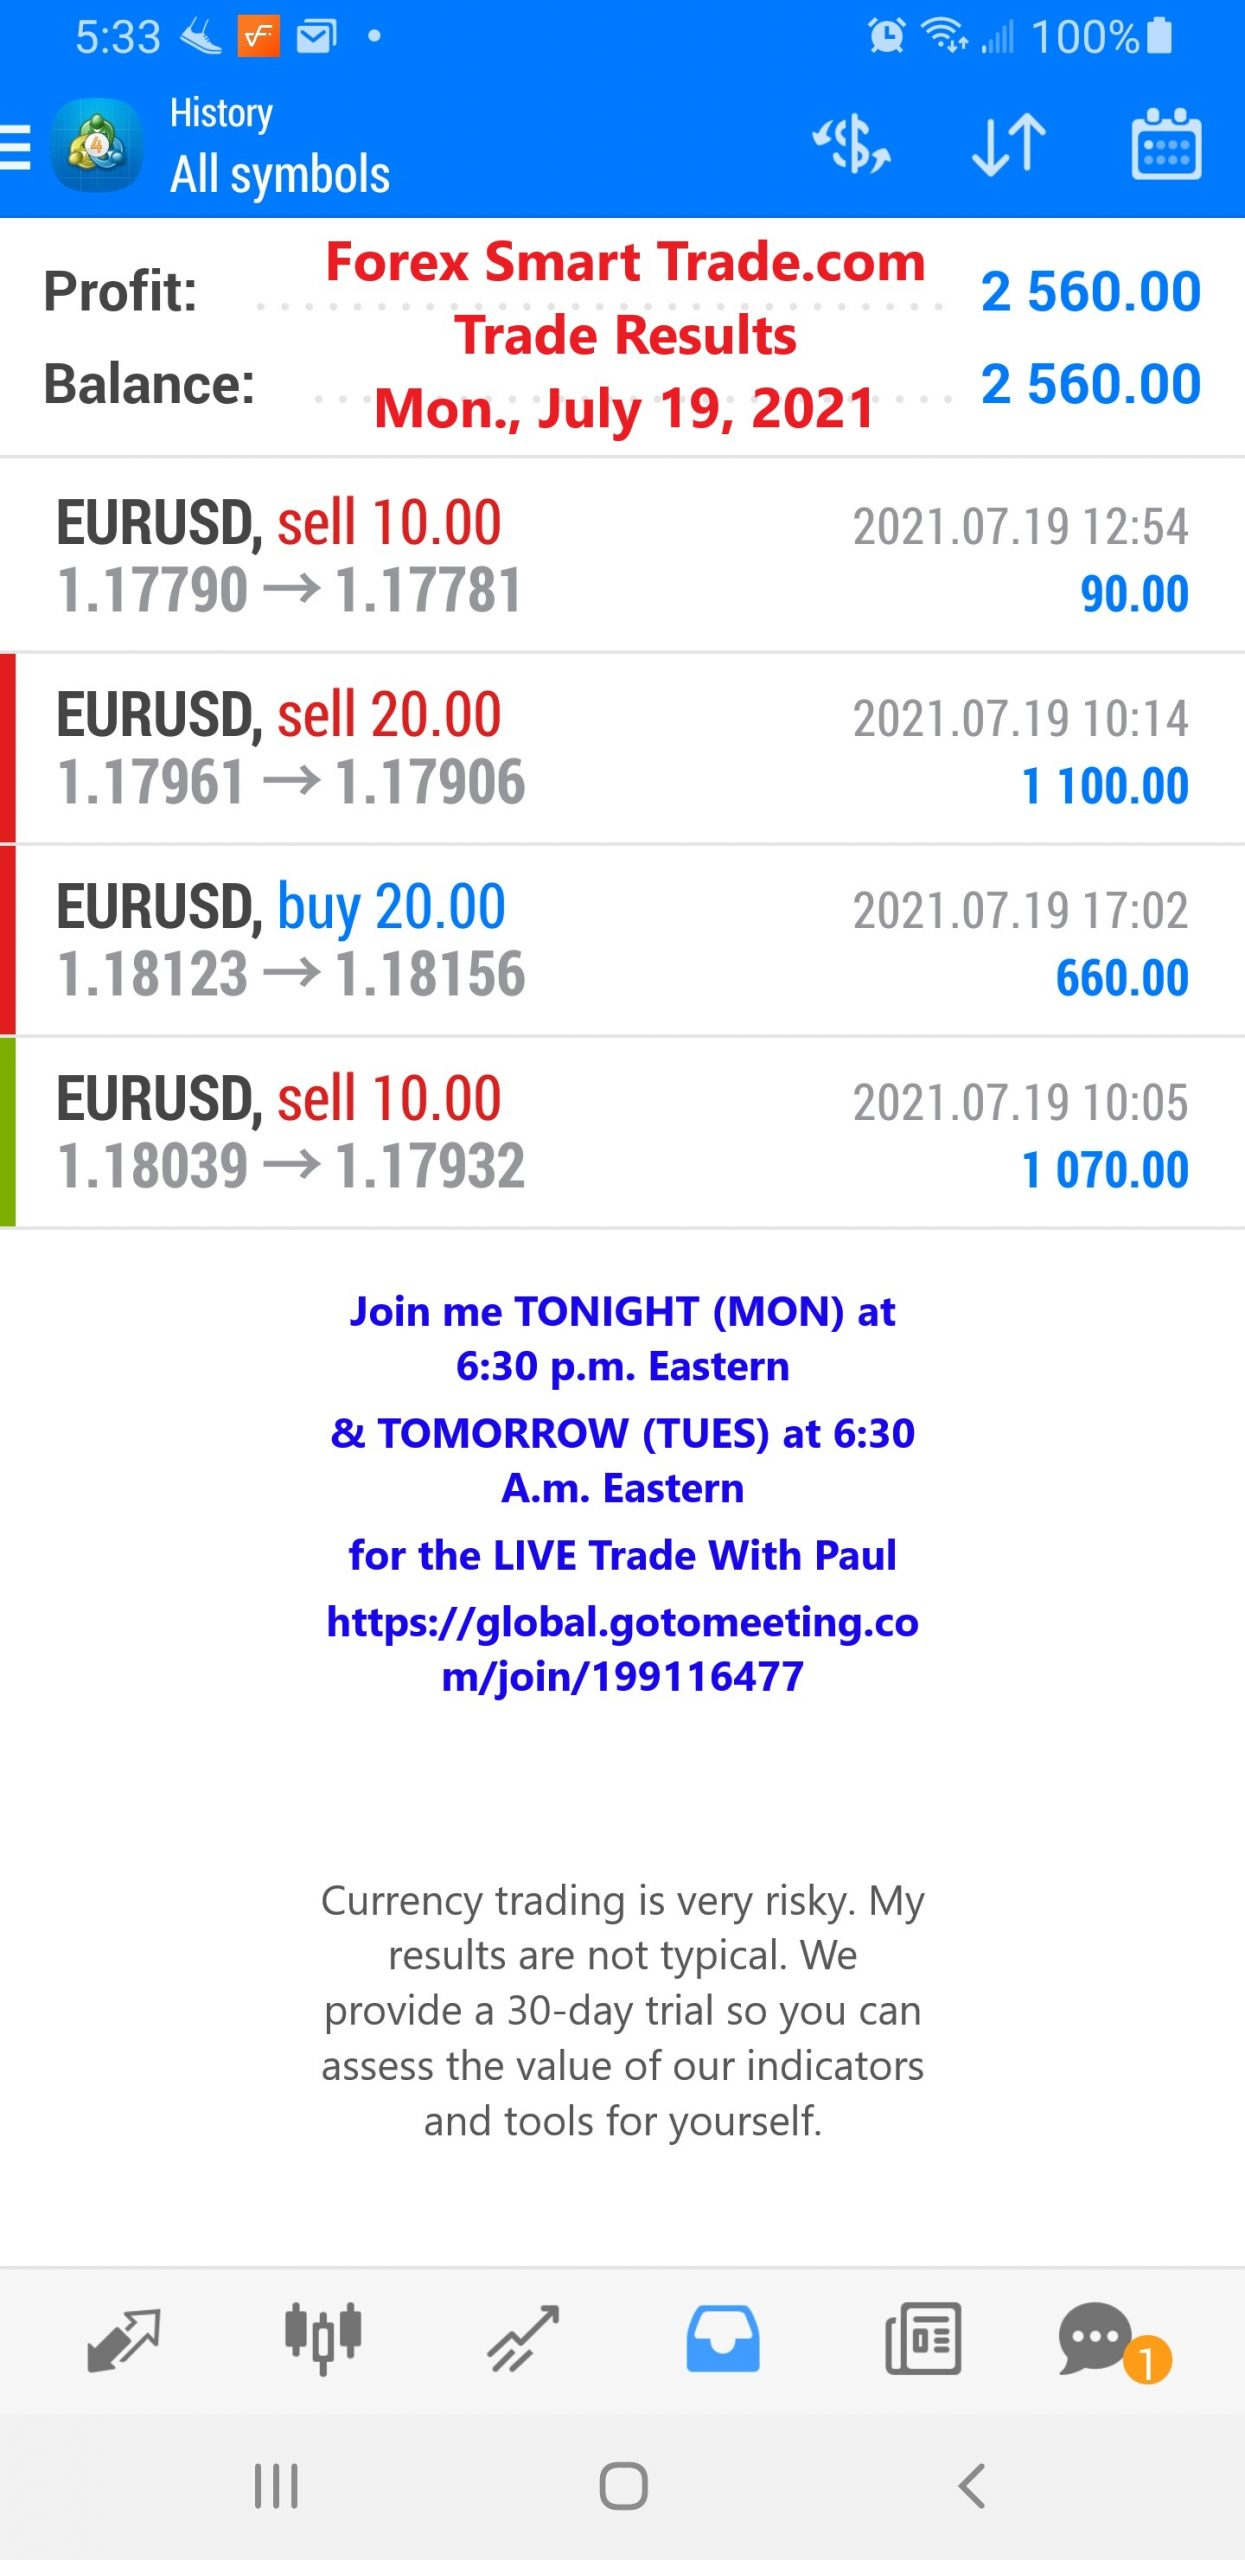 Daily Trade Results. Forex Smart Trade. Learn to Day Trade With the Best Forex Currency Trading Course